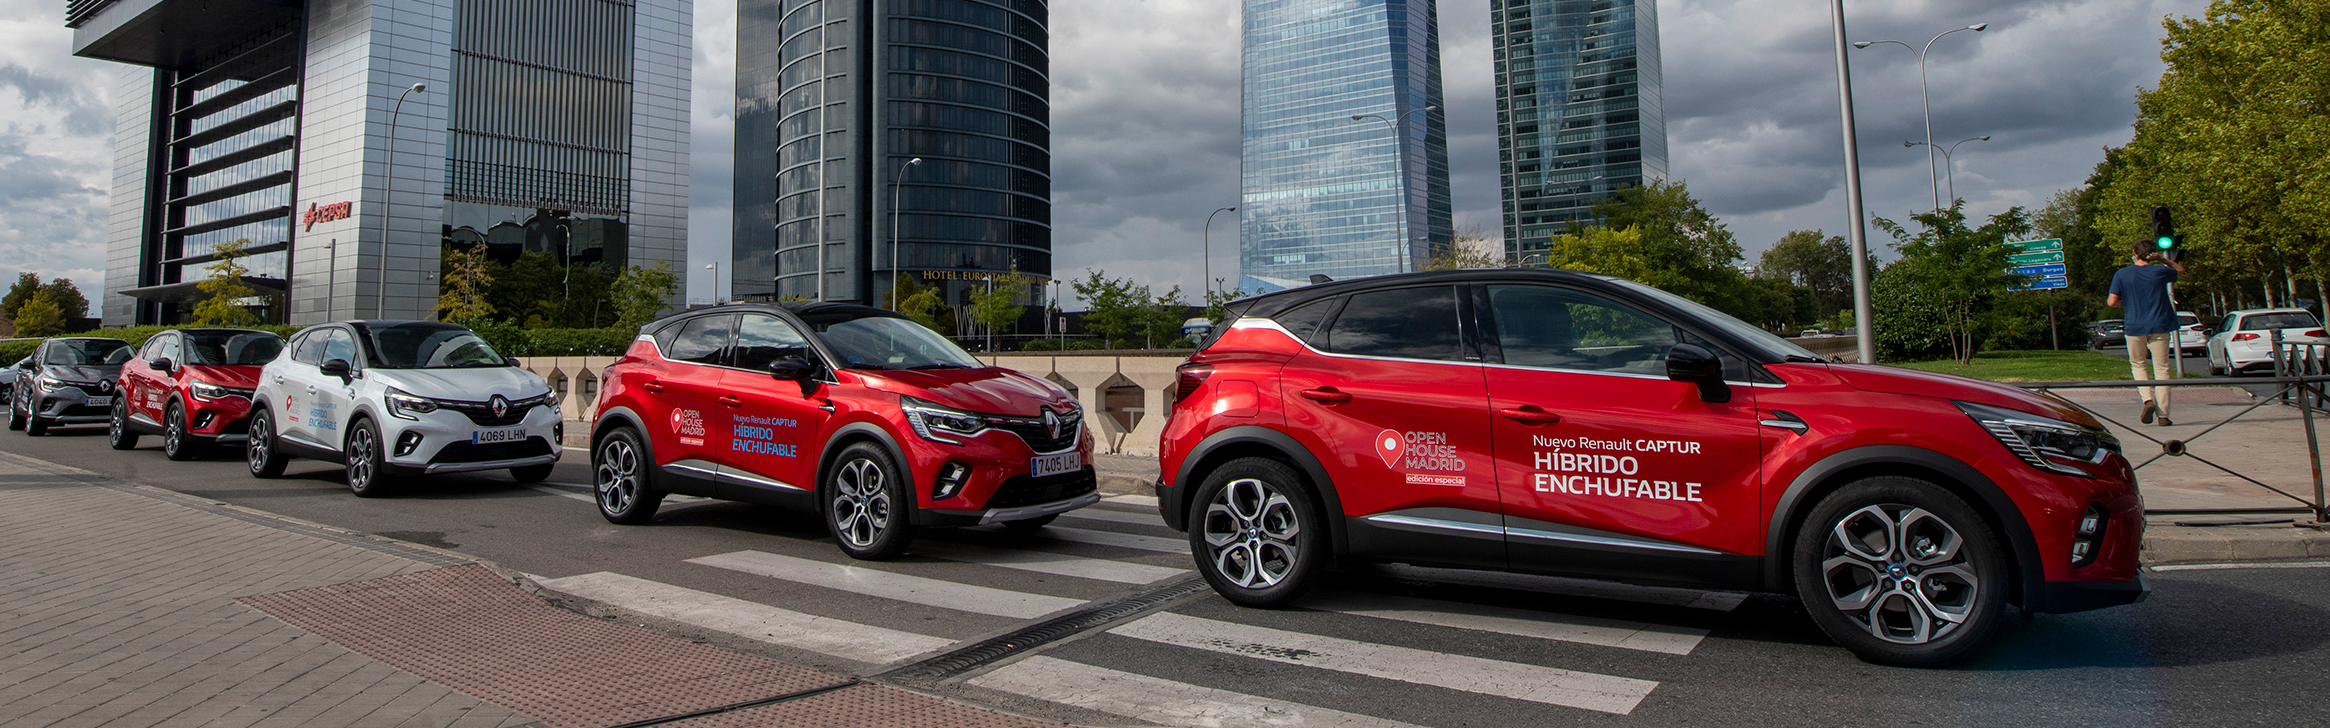 Renault Captur E-TECH protagonista en el OPEN HOUSE MADRID